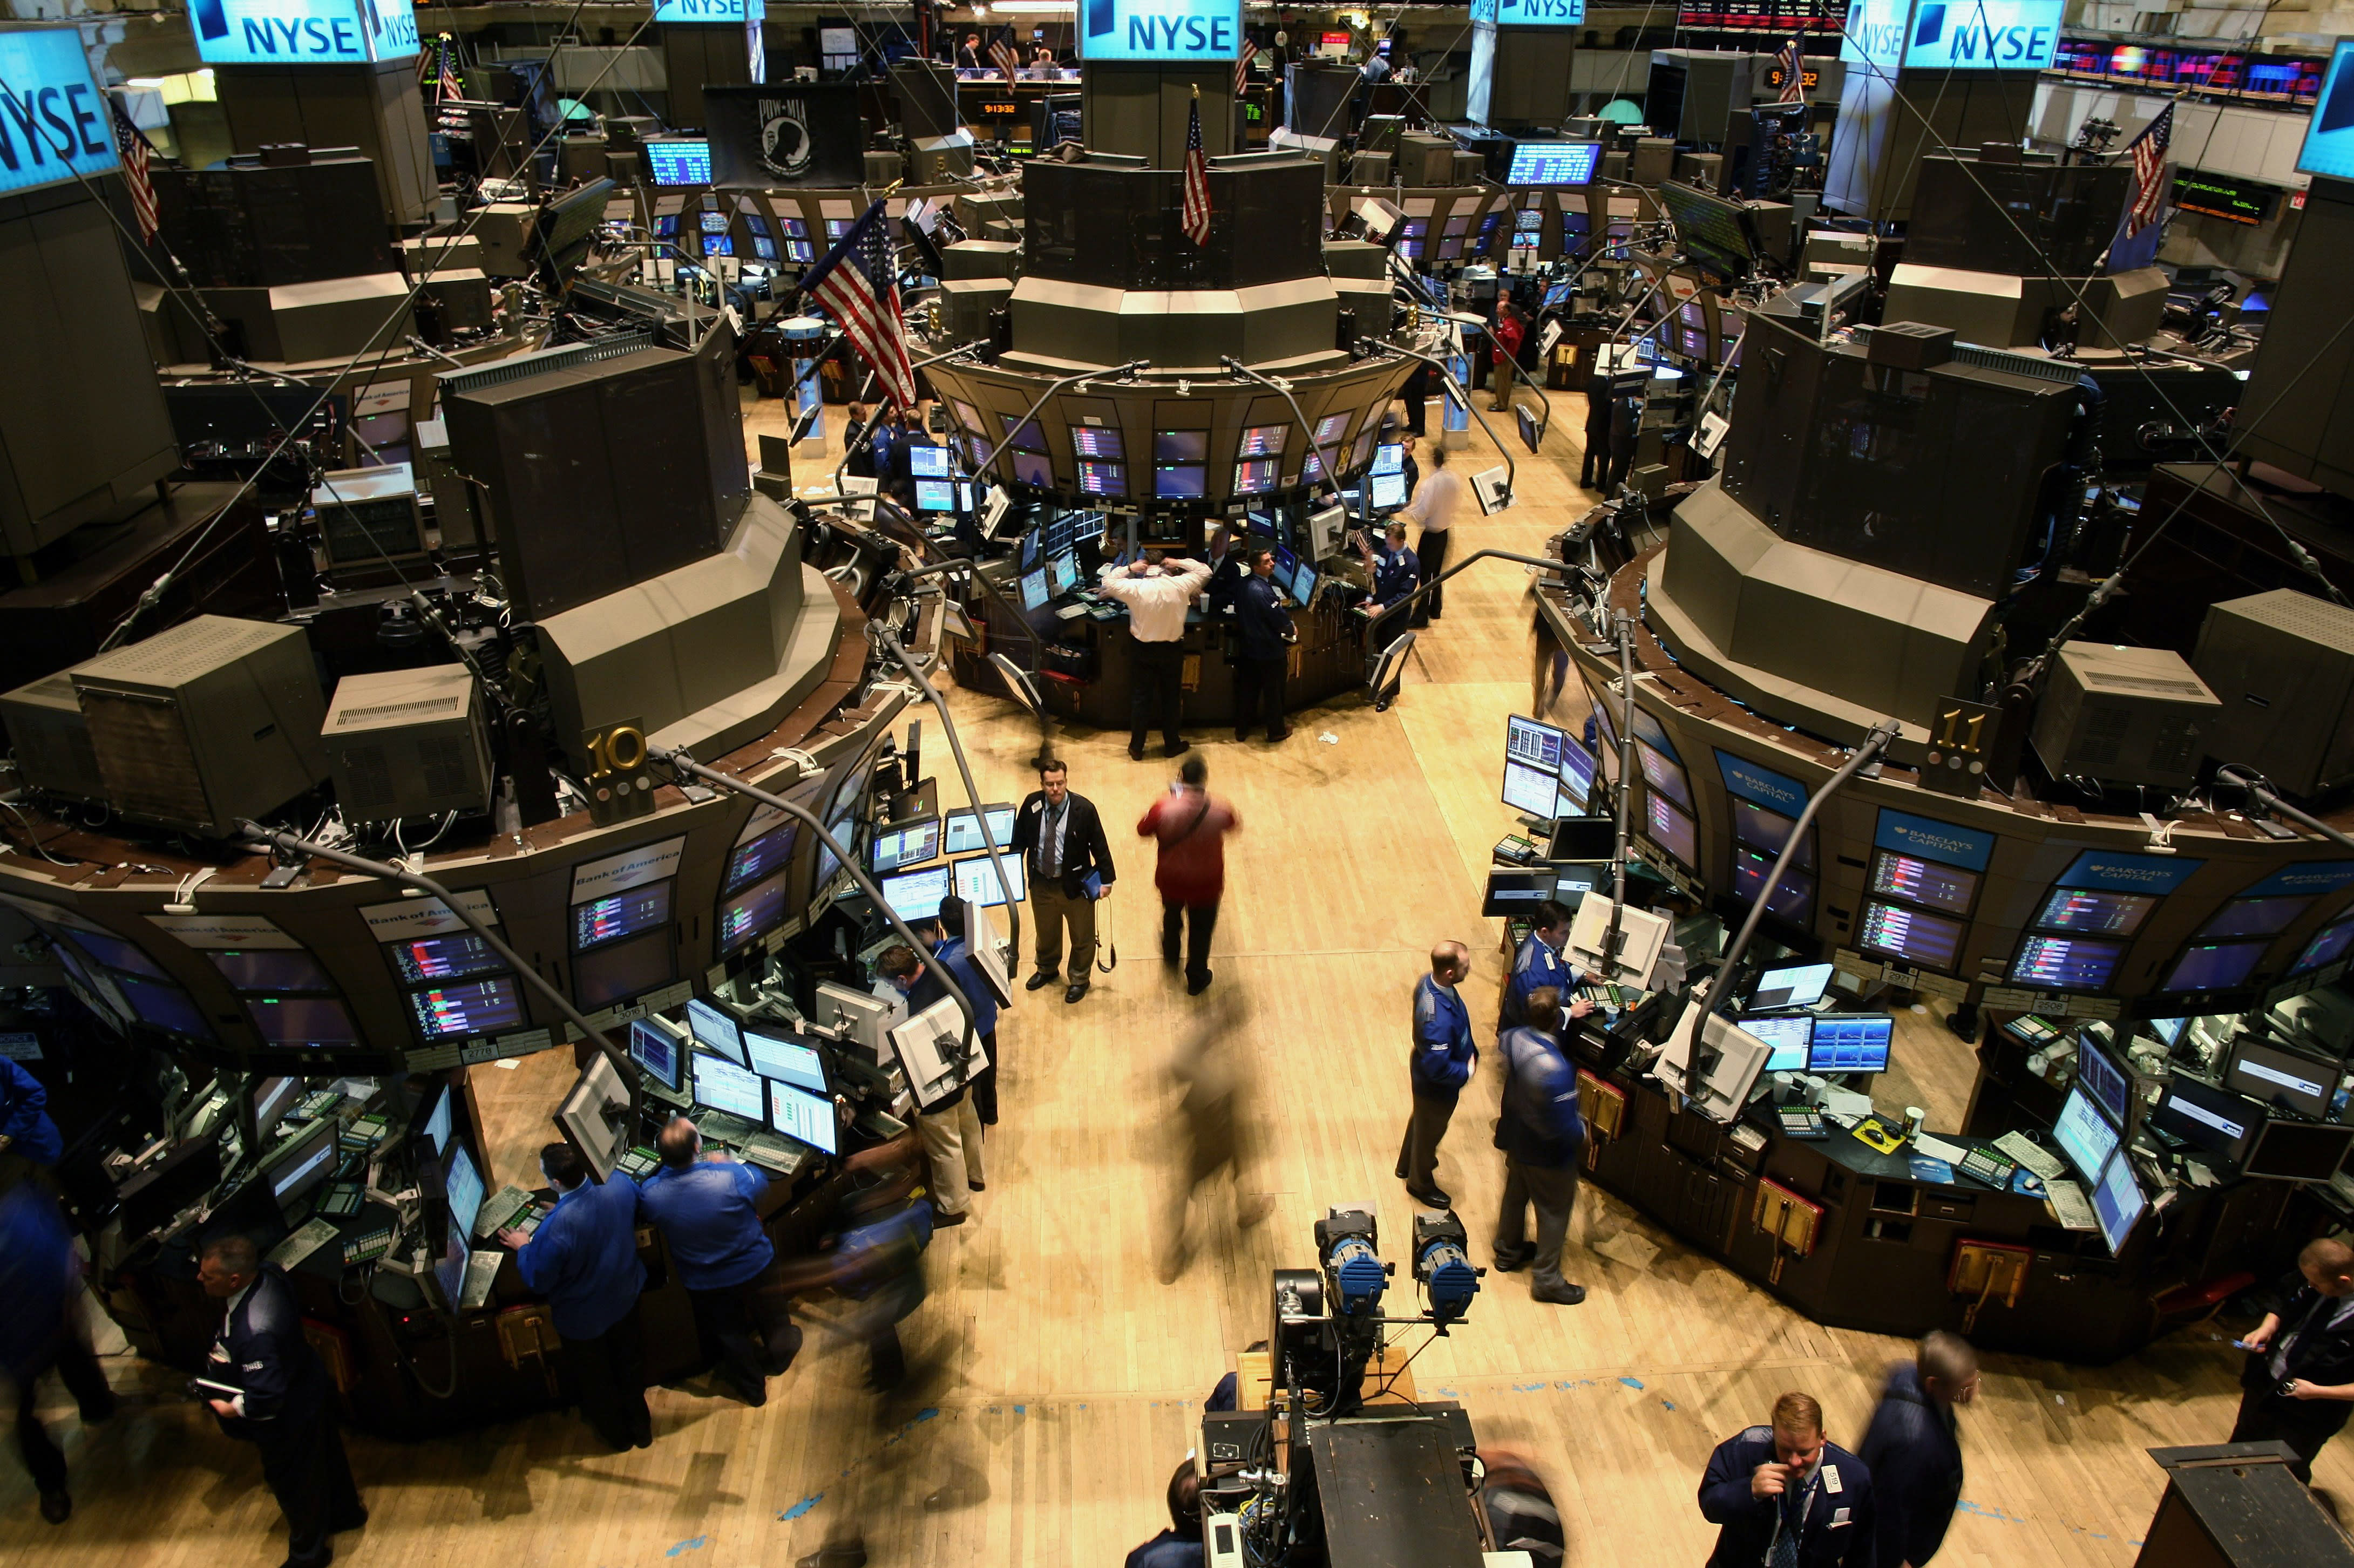 Stock market news live updates: Stocks mostly lower as earnings kick o... image